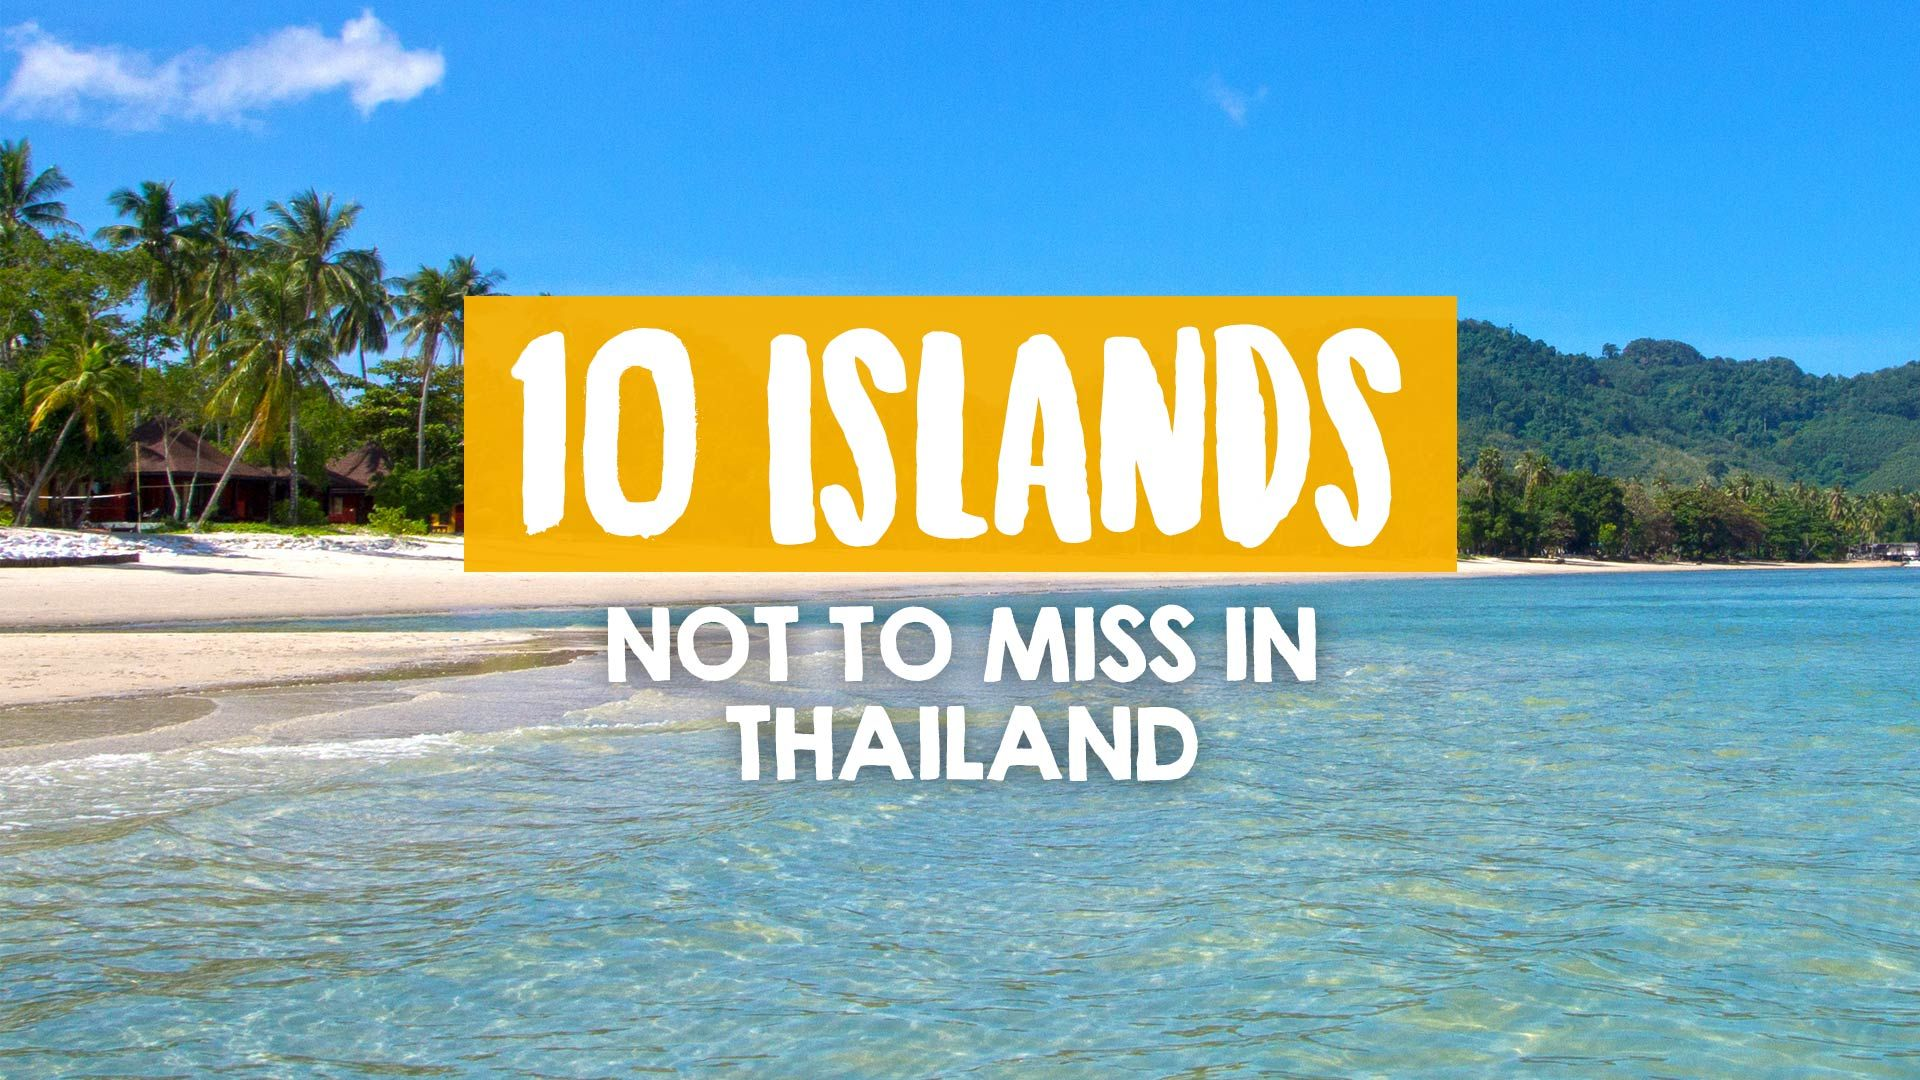 Phuket Geheimtipps 10 Islands Not To Miss In Thailand Thailand Vaca Thailand